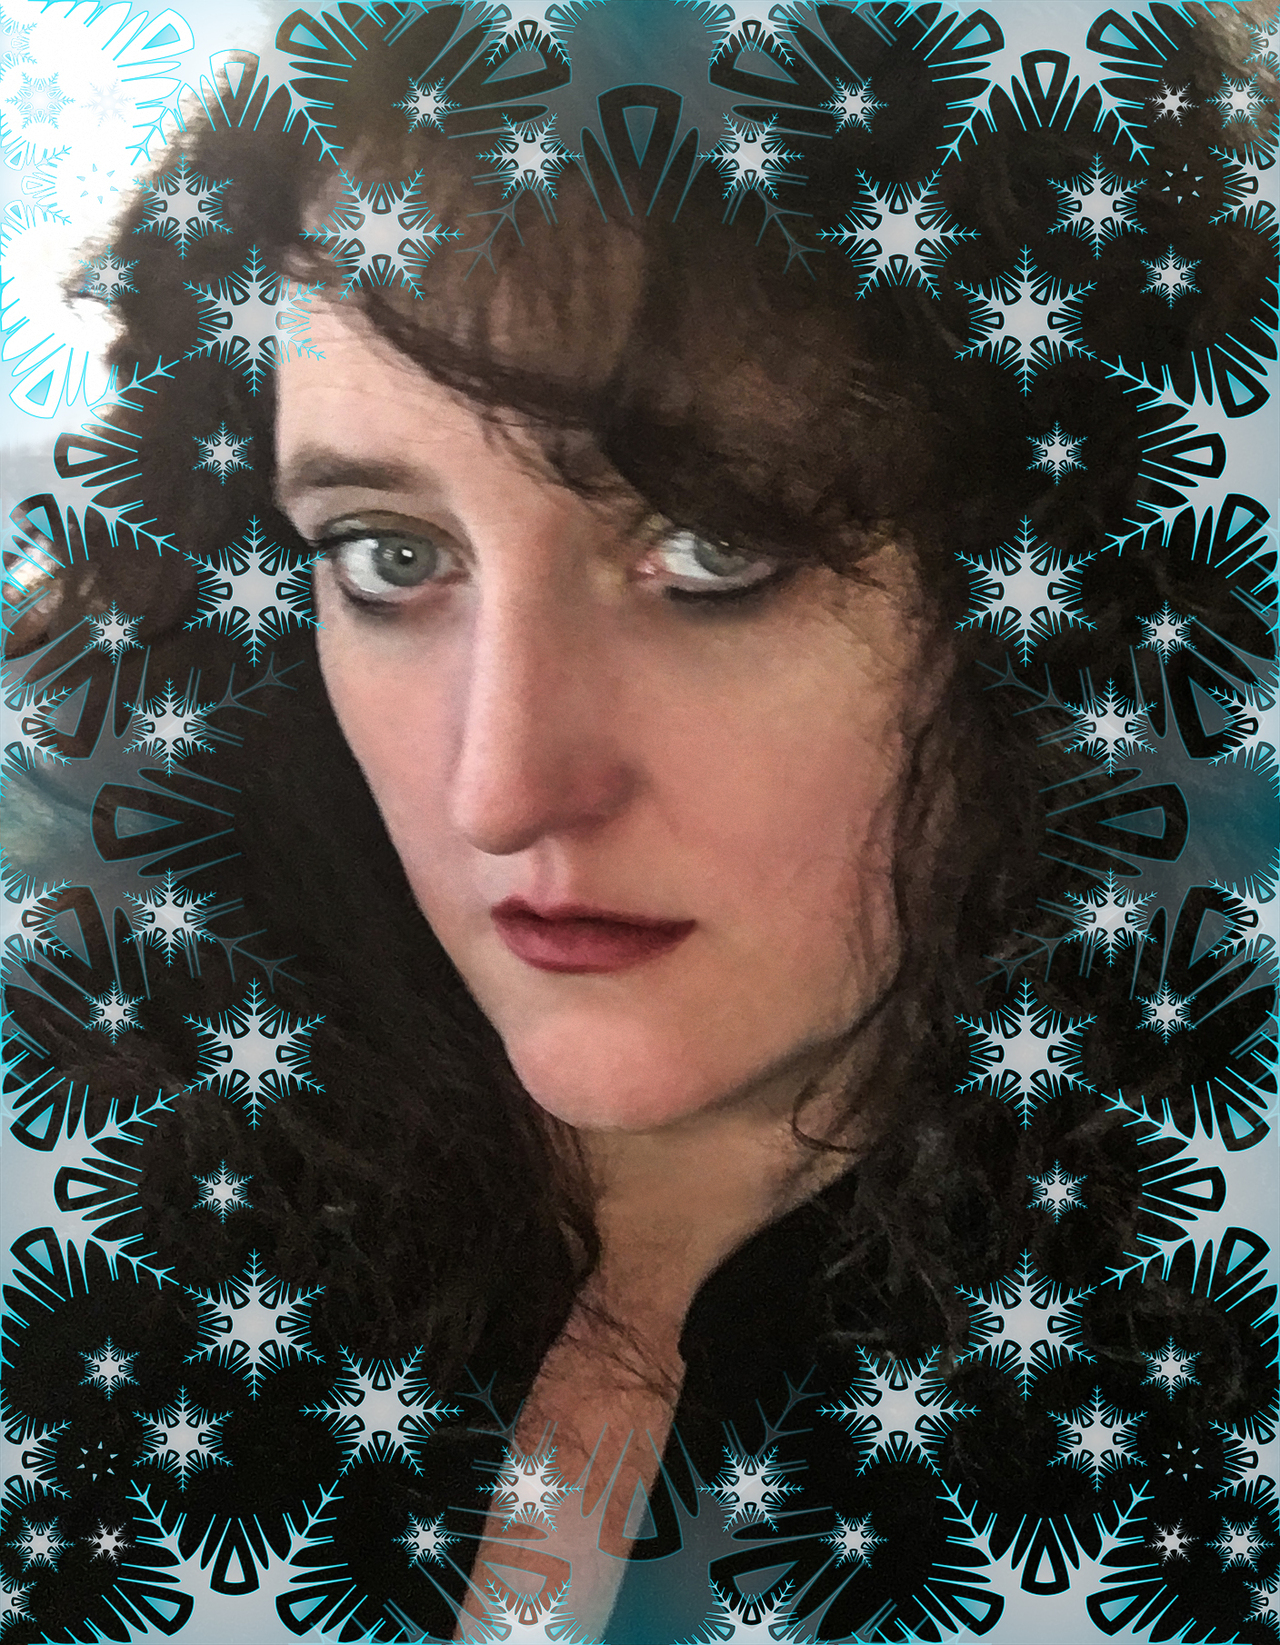 Angie snowflake picture two